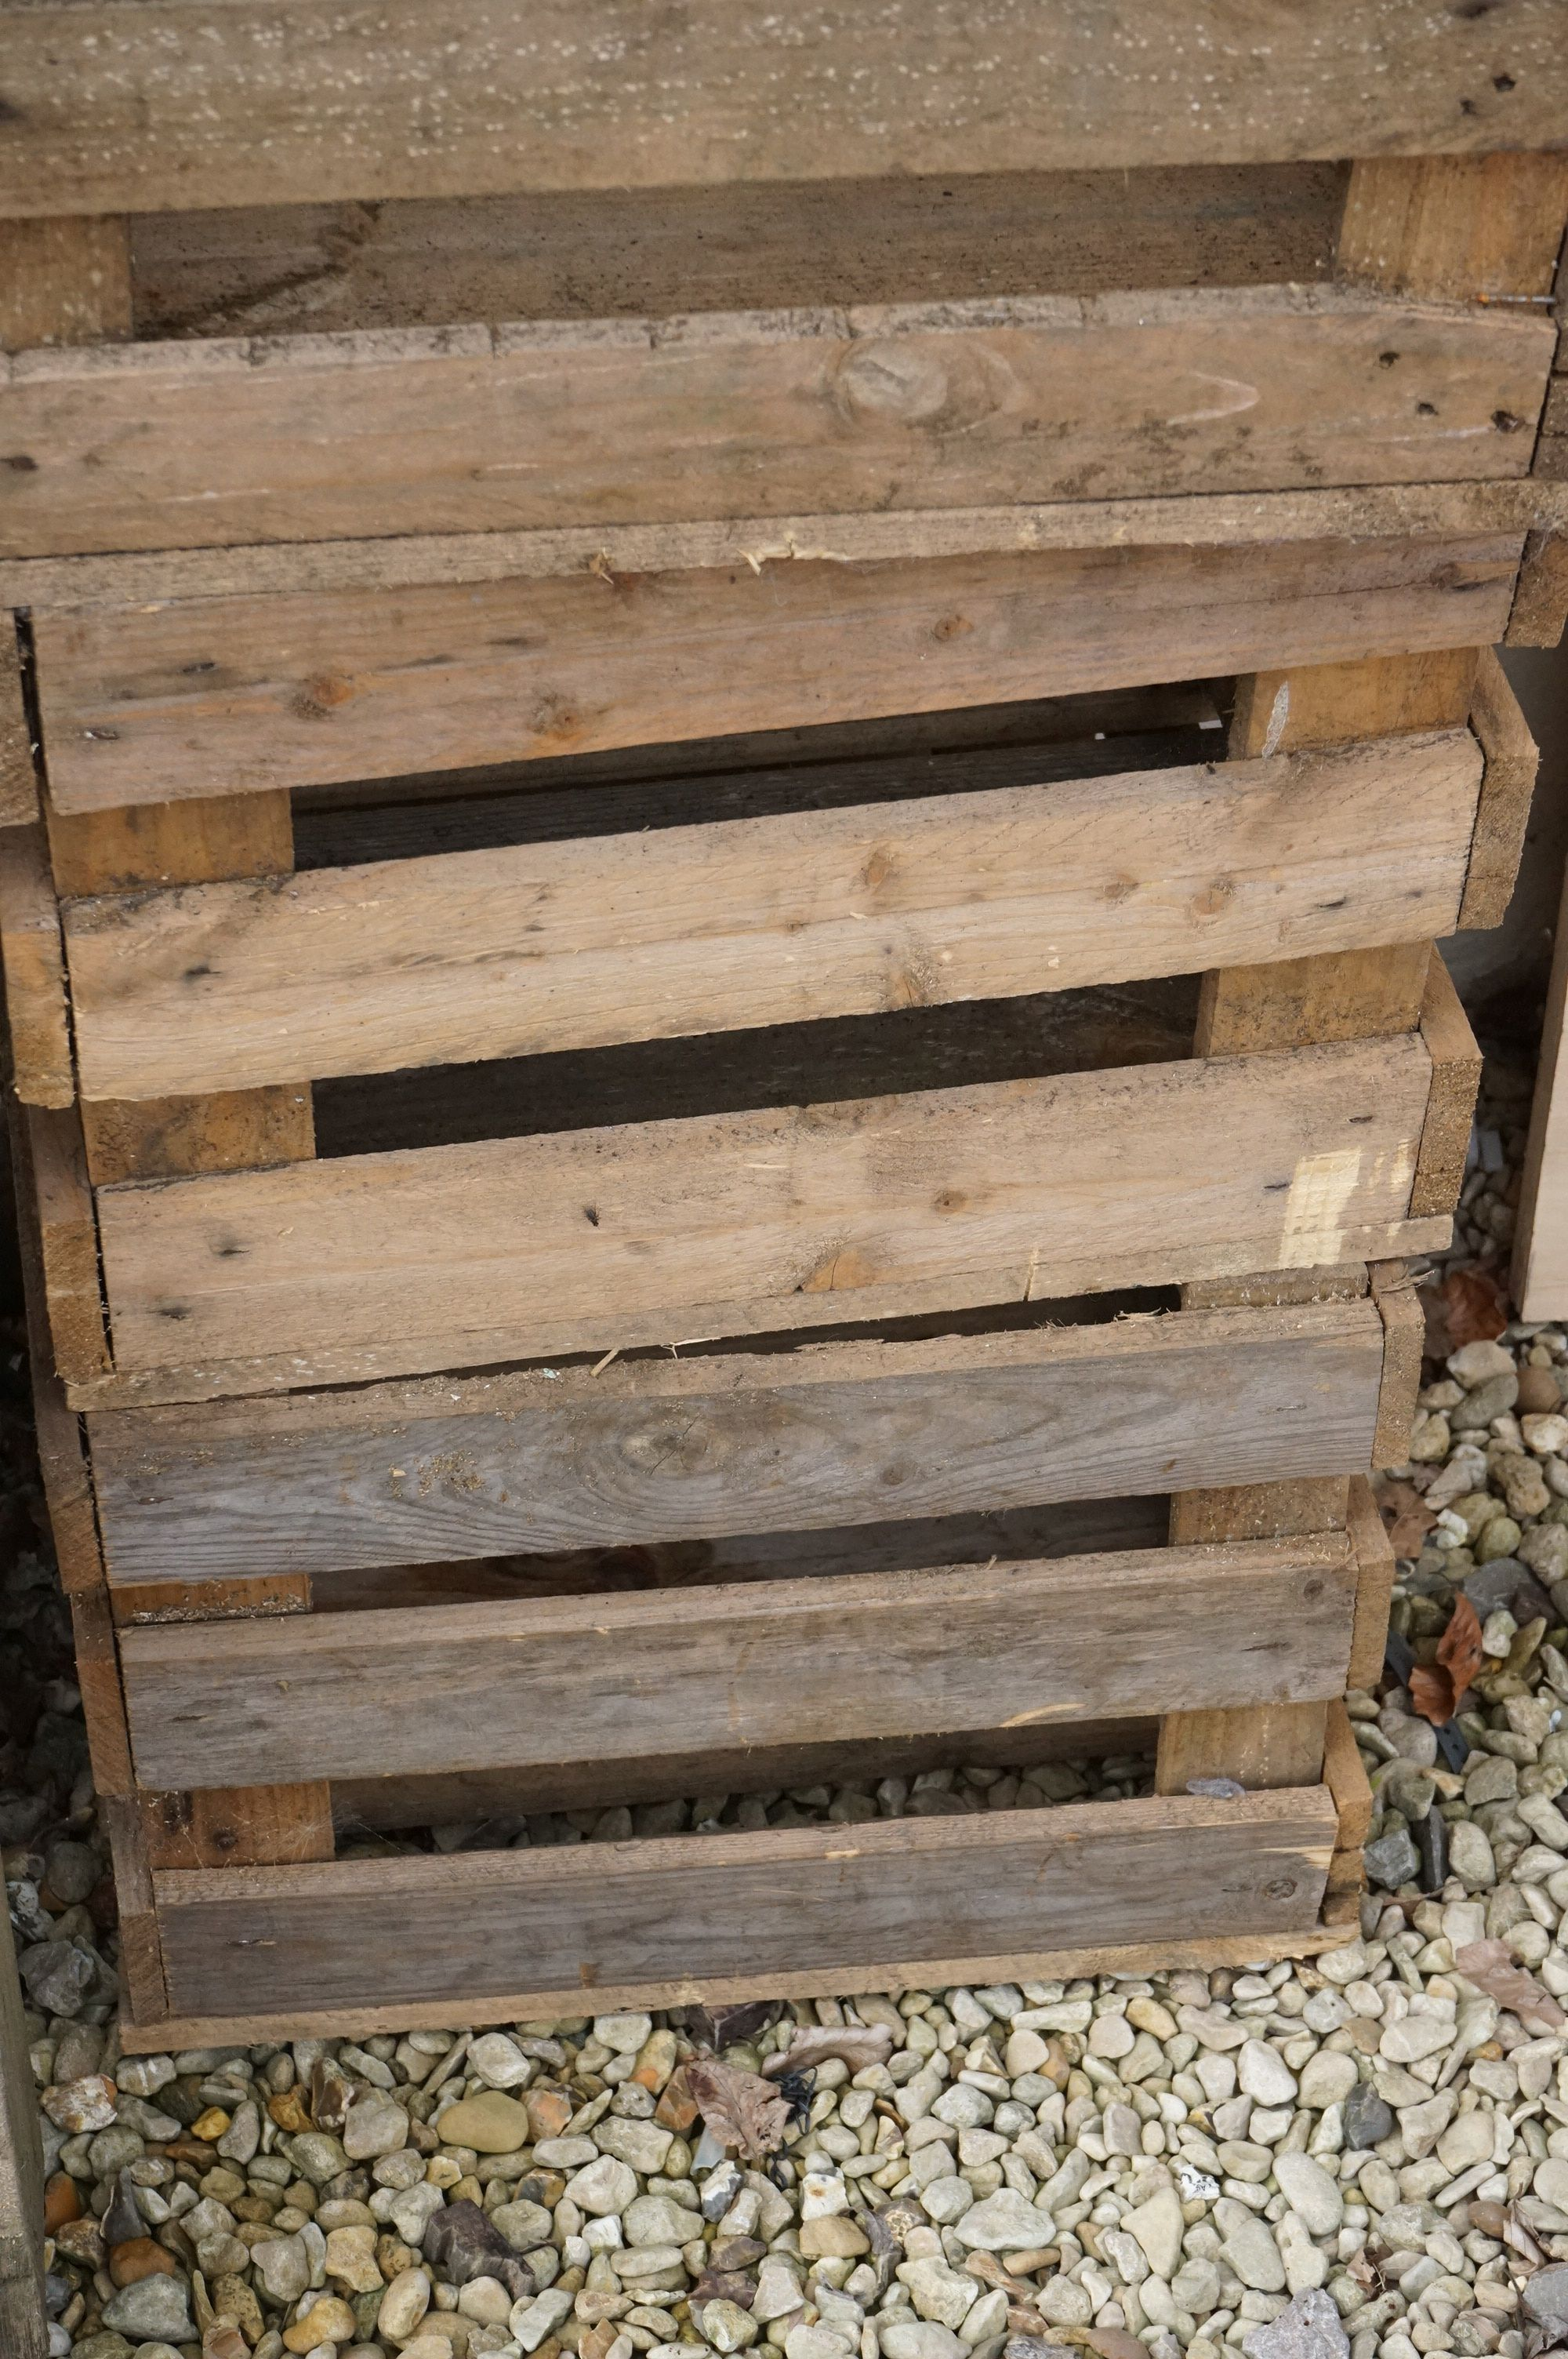 Four stacking pine crates for apples / vegetables - Image 3 of 4